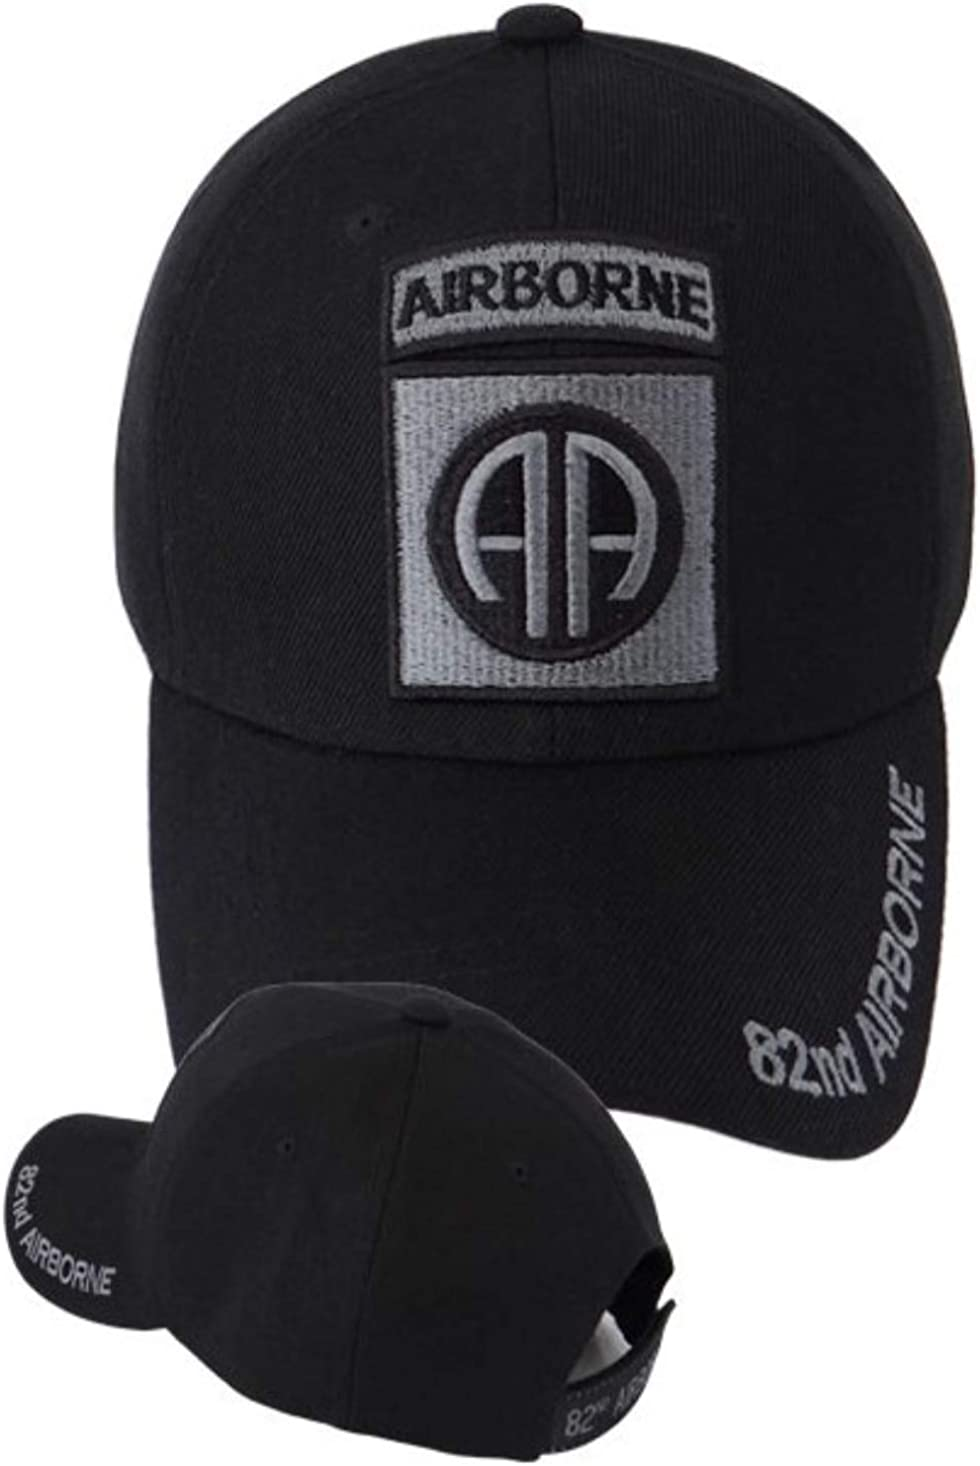 First Military Choice 82nd Airborne Division Emblem Military Cap Black